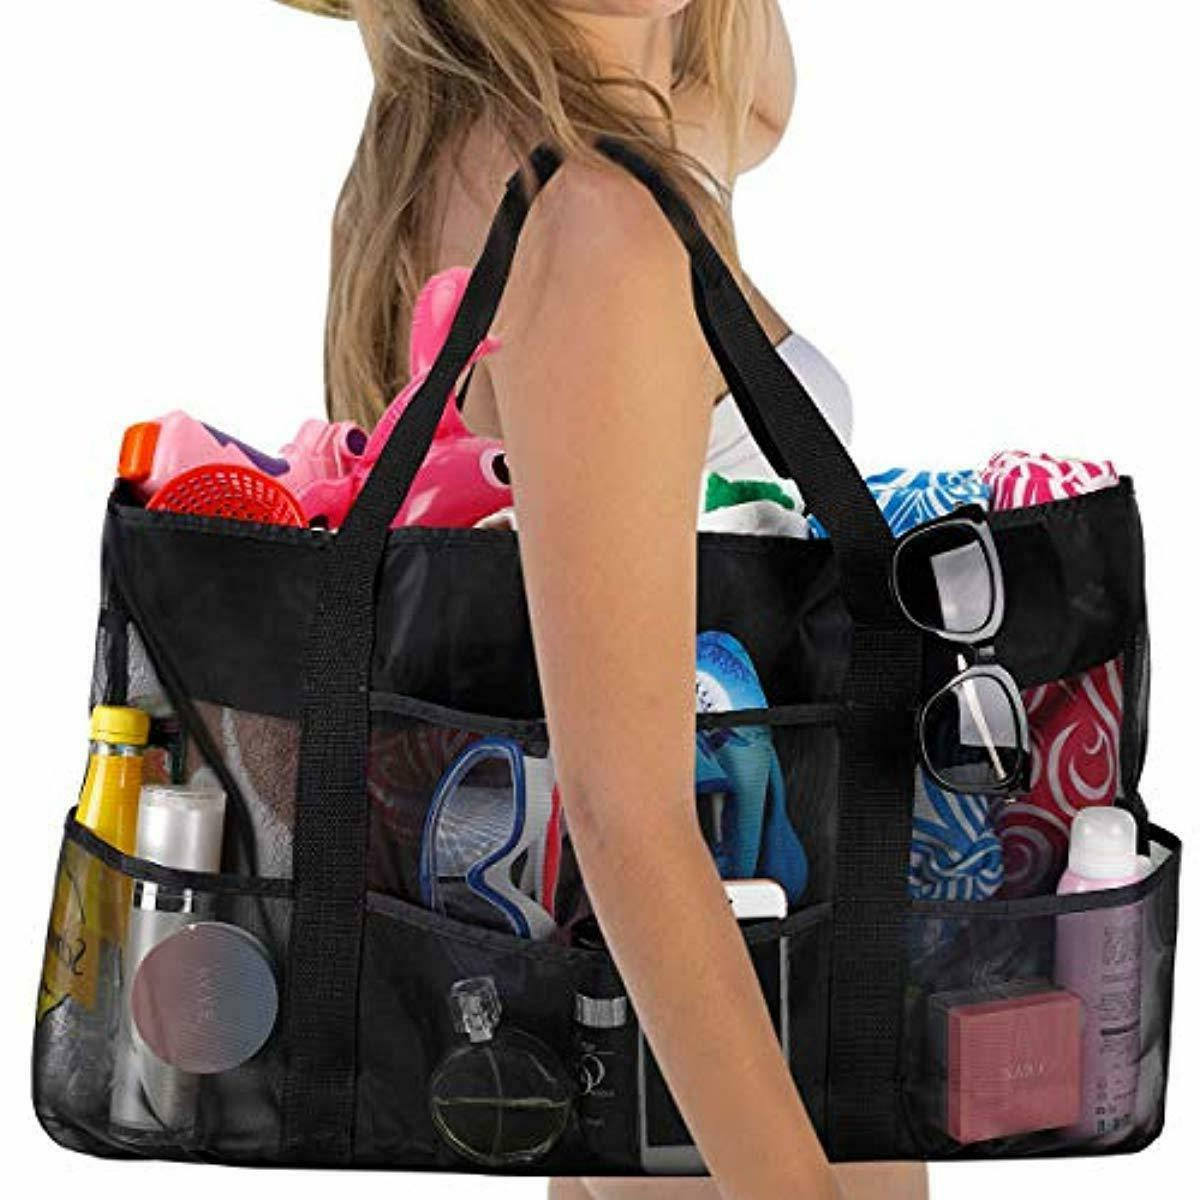 Extra Large Beach and Totes XXL Beach Bag with 8 Pockets